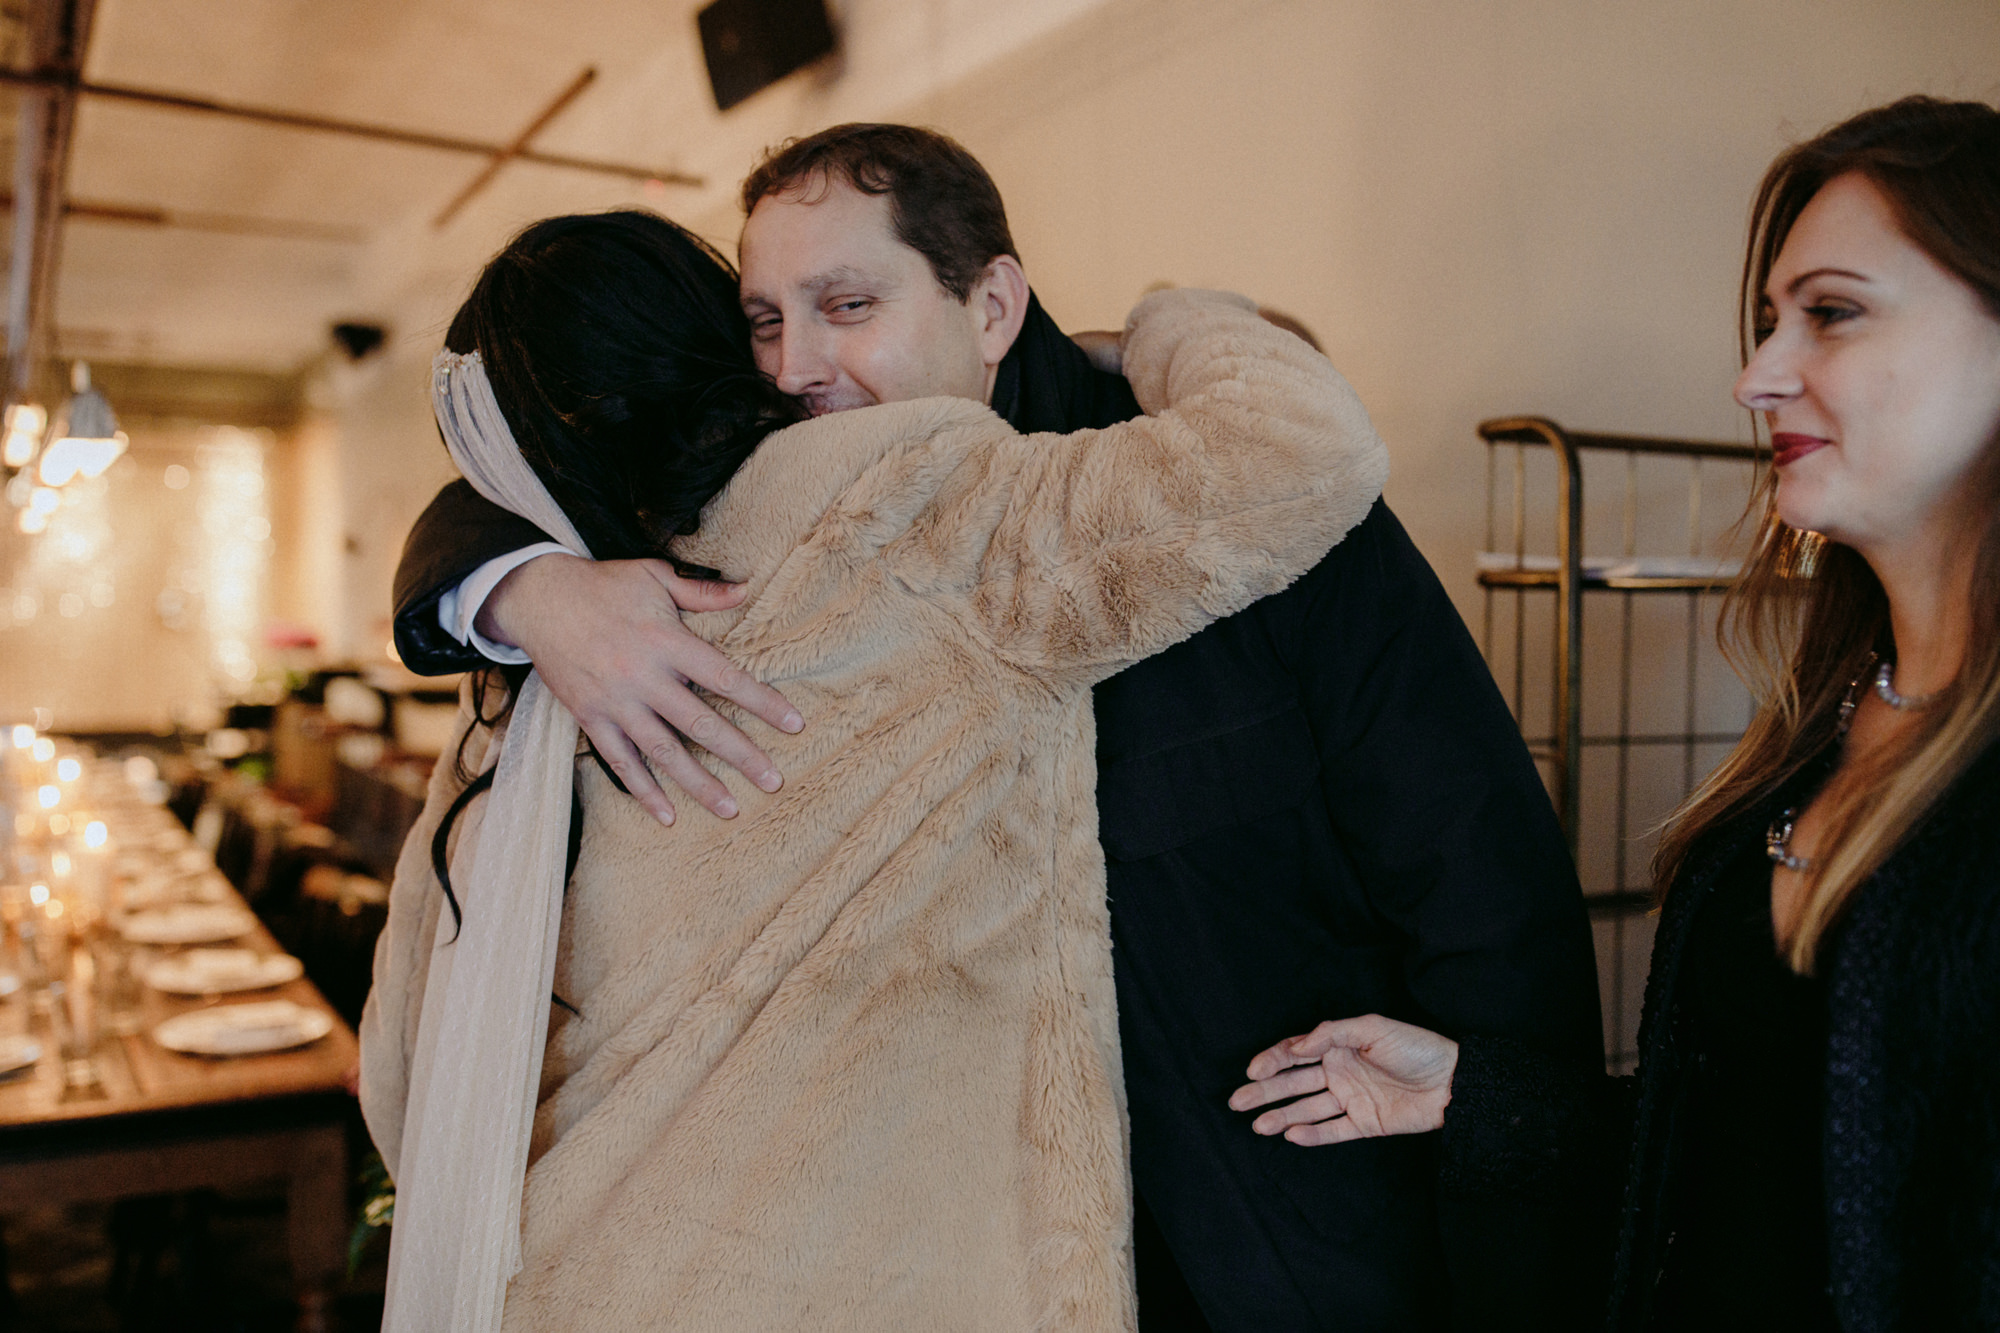 BROOKLYN_ELOPEMENT_SAMMBLAKE_NDE_394.jpg